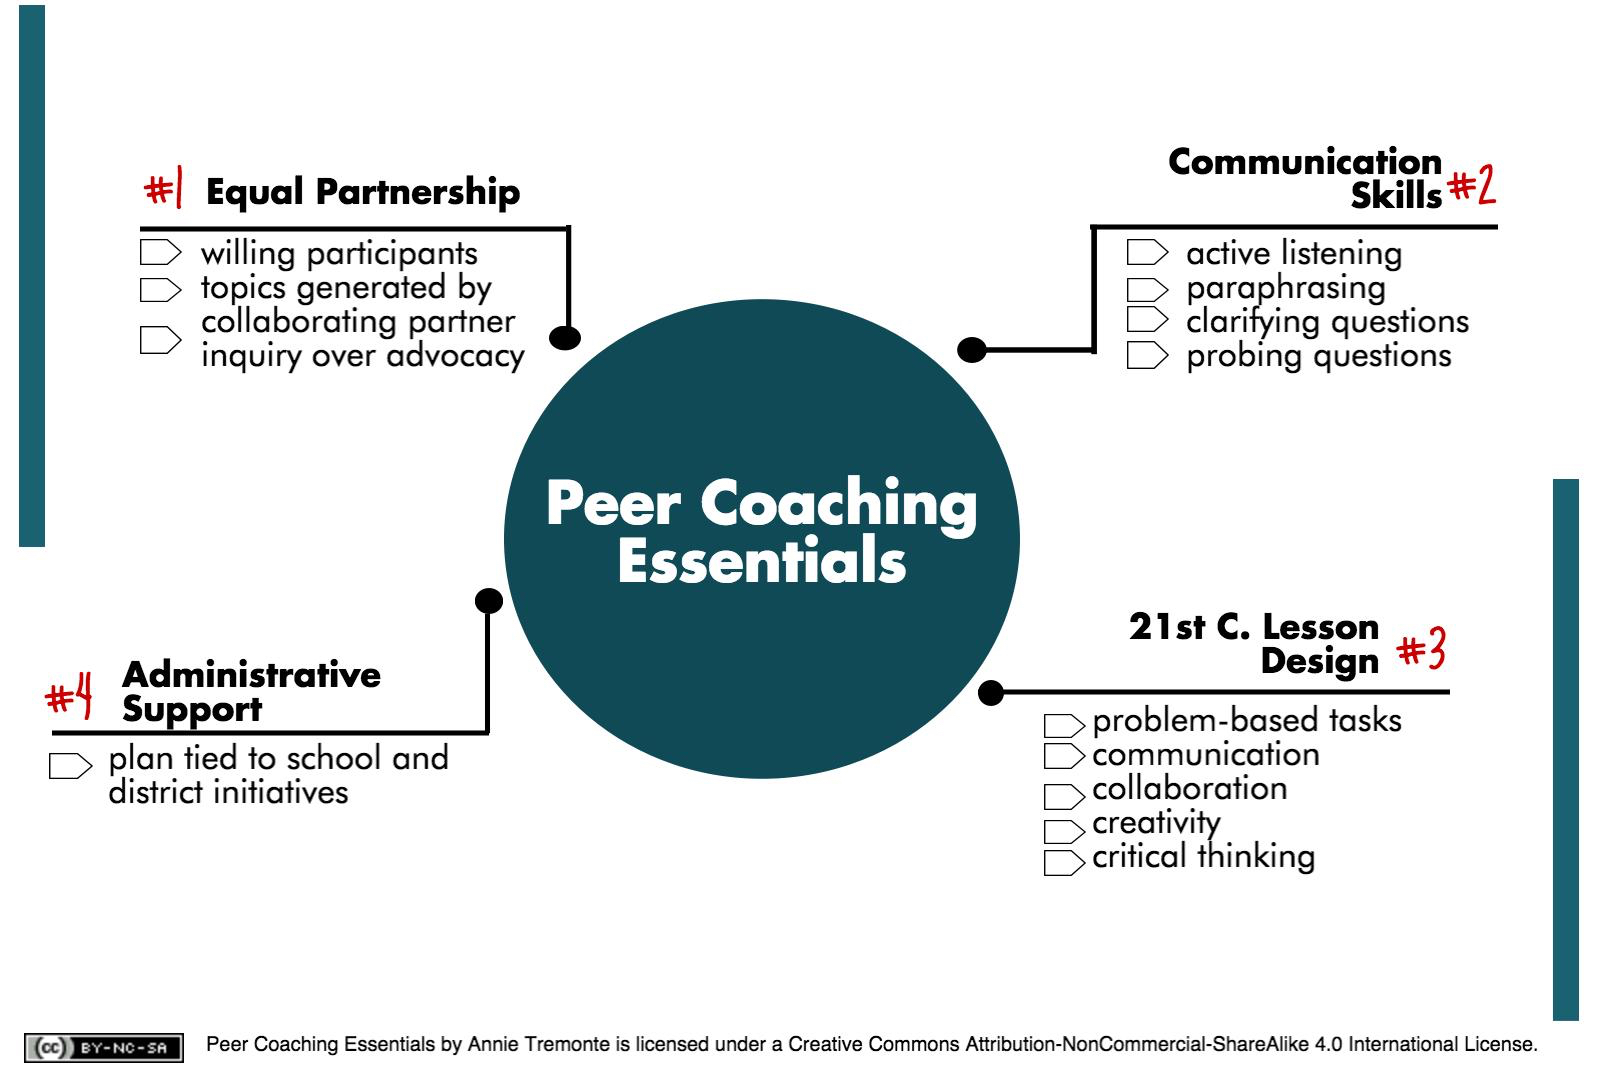 peer coaching | ANNIE TREMONTE